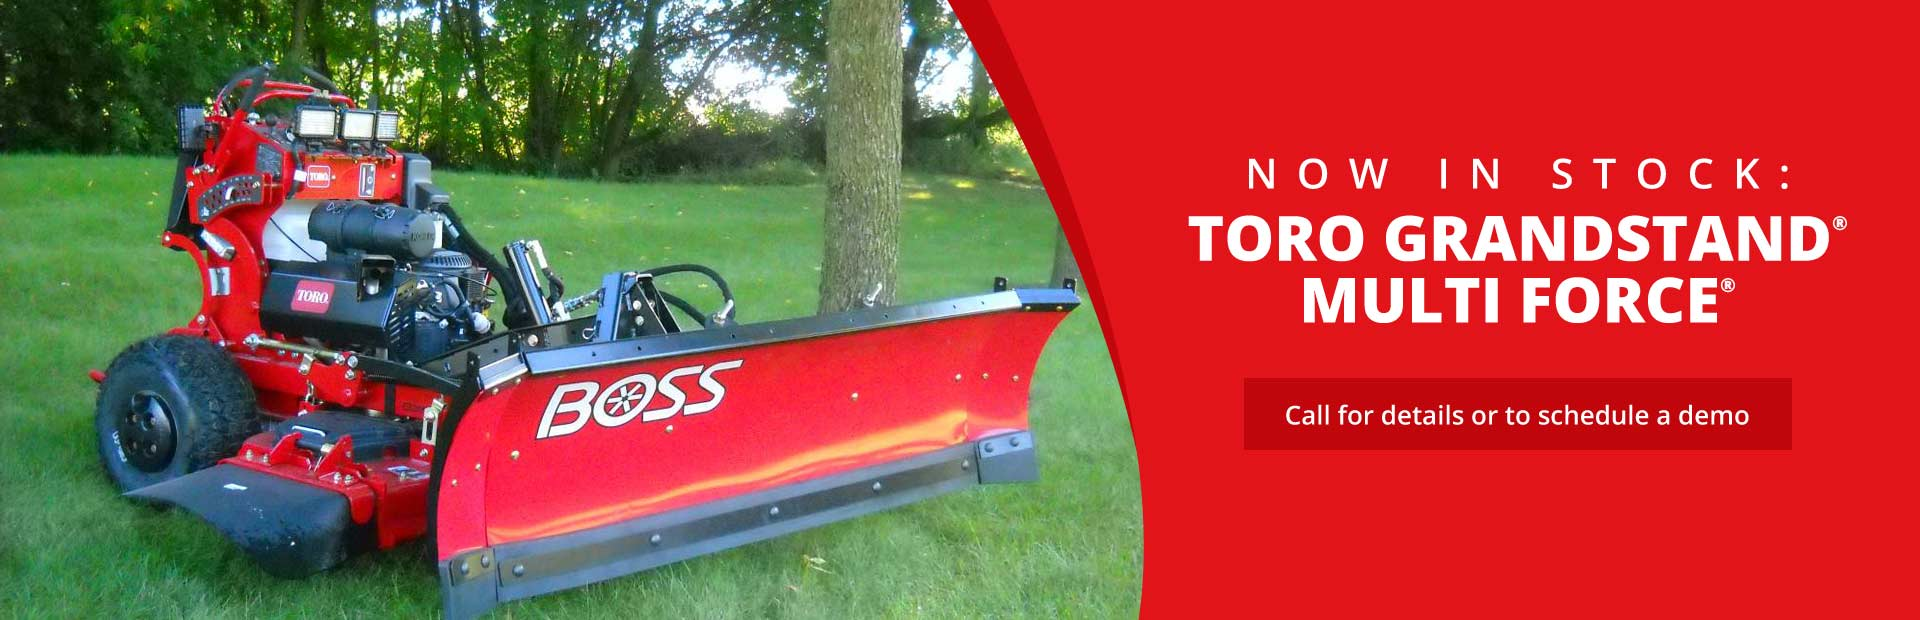 The Toro GrandStand® MULTI FORCE® is now in stock! Call (651) 429-9297 for details or to schedule a demo.